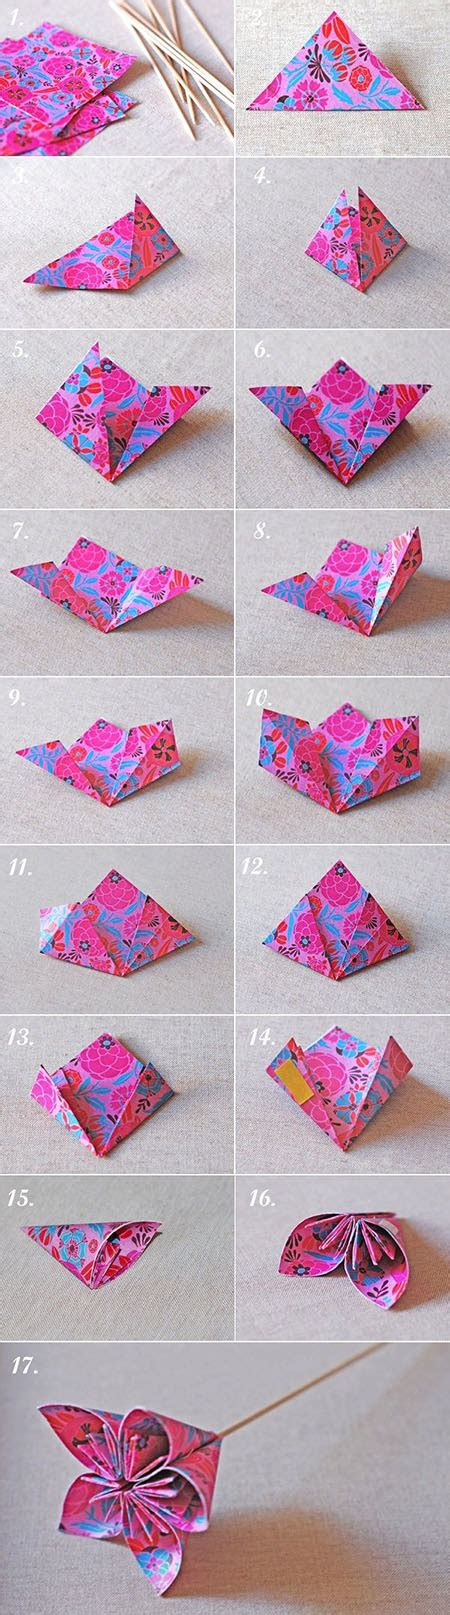 How To Make Origami Kusudama Flowers - origami kusudama flowers useful tutorials